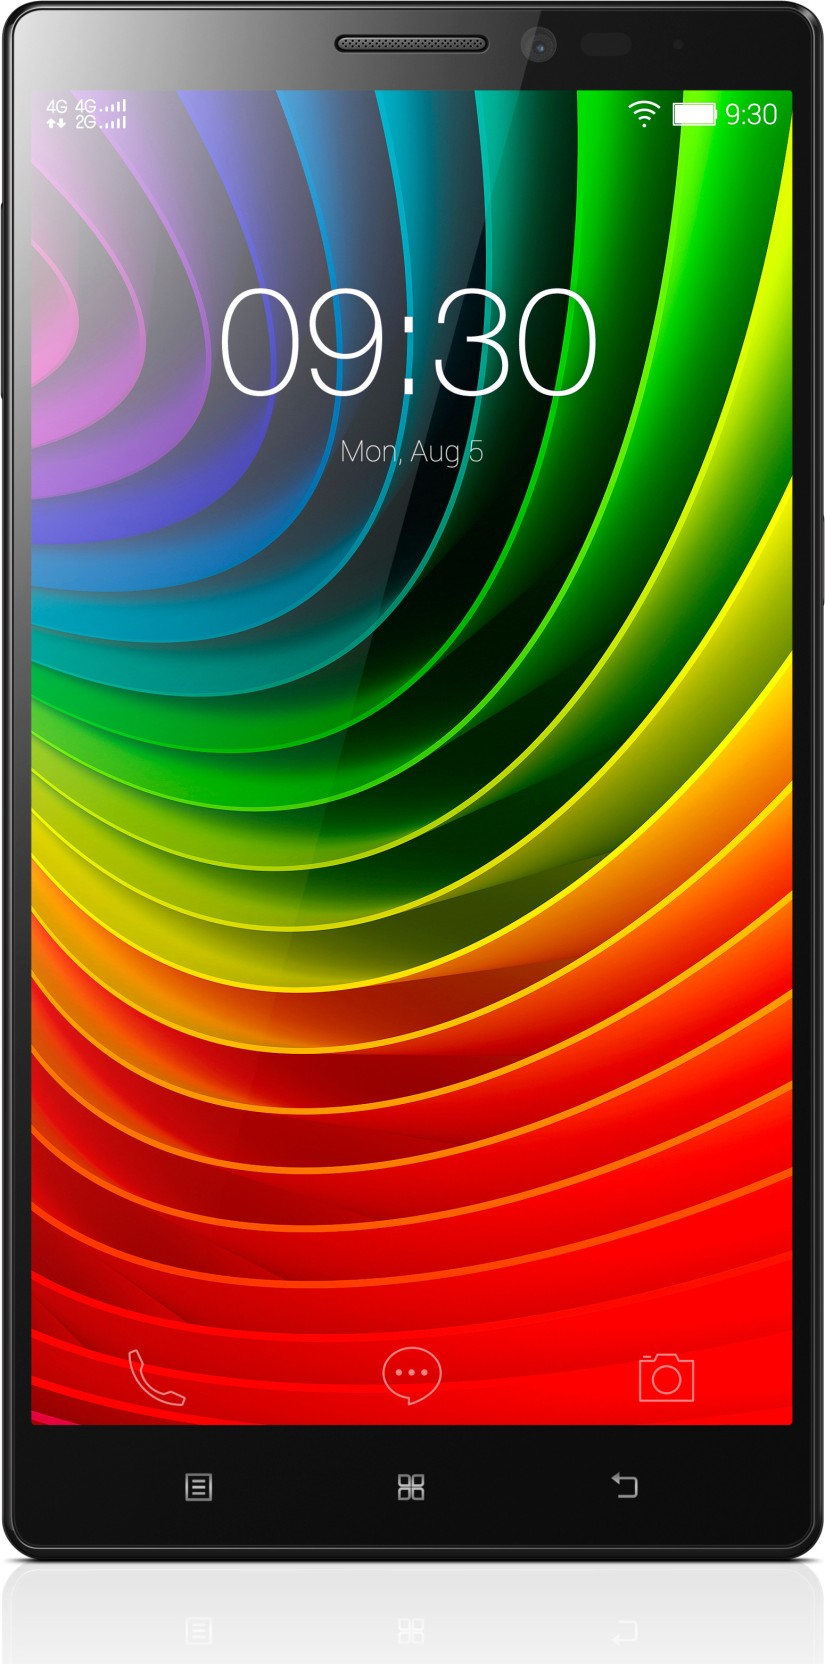 Lenovo Vibe Z2 Pro Starry Night Black 32 Gb Online At Best Price X2 4glte 32gb Gold Add To Cart